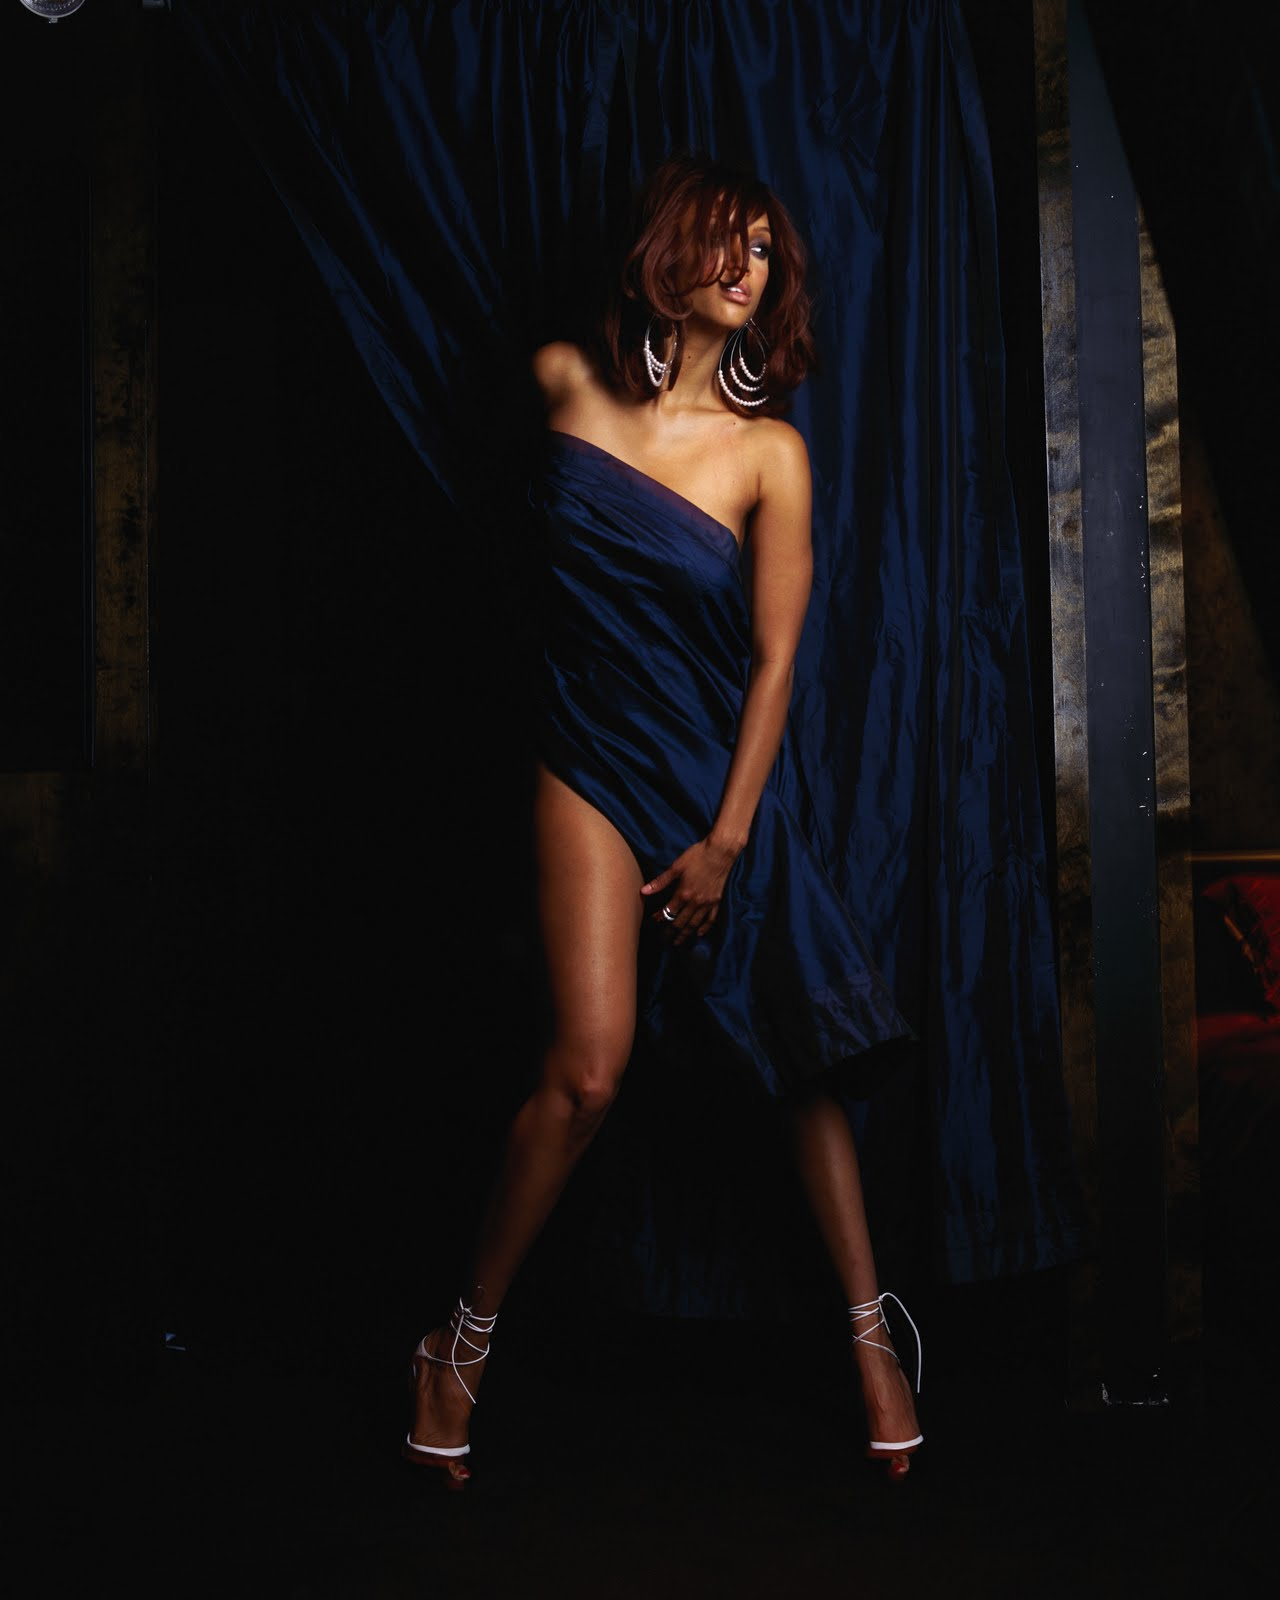 37 Best Photo Stills 1974 And 2013 Movie Versions Of The: Tyra Banks Photo Shoot For King Magazine